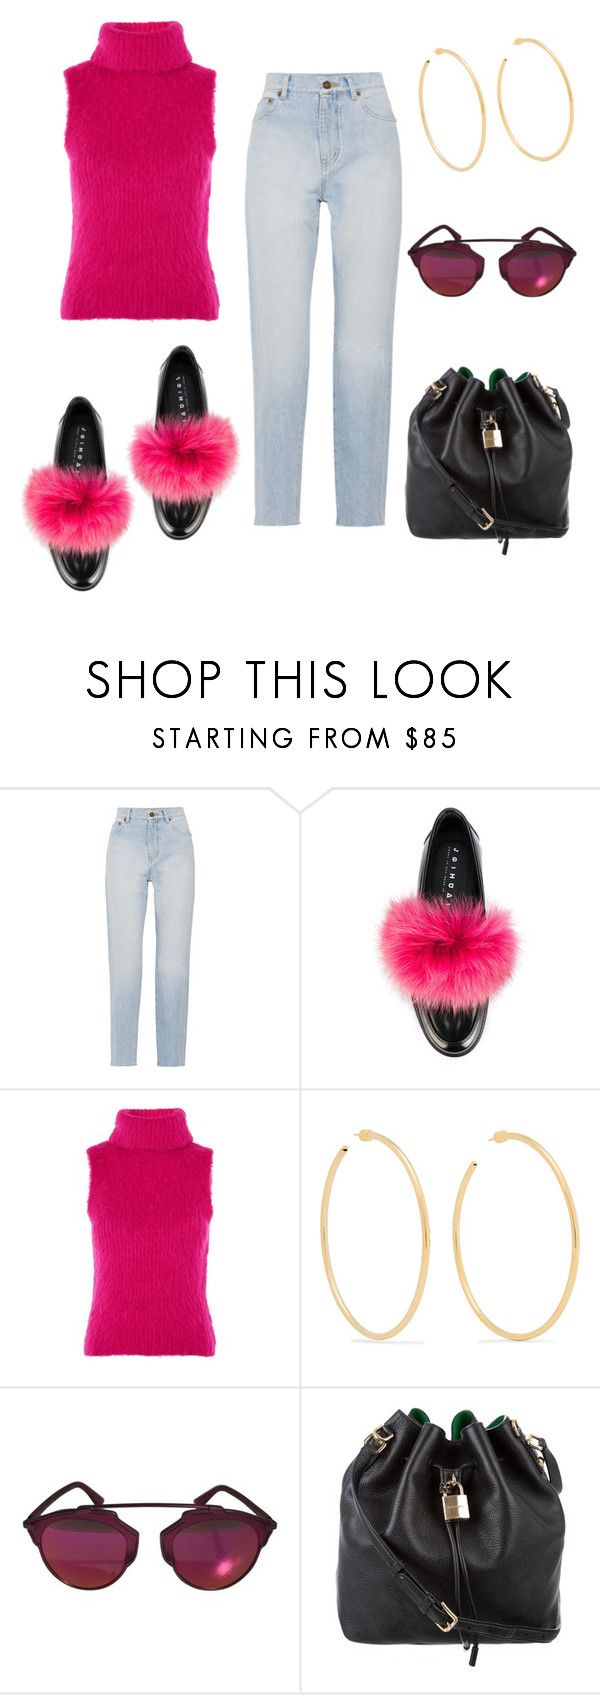 """Untitled #669"" by geminikill ❤ liked on Polyvore featuring Yves Saint Laurent, Joshua's, Topshop, Jennifer Fisher, Christian Dior and Dolce&Gabbana"